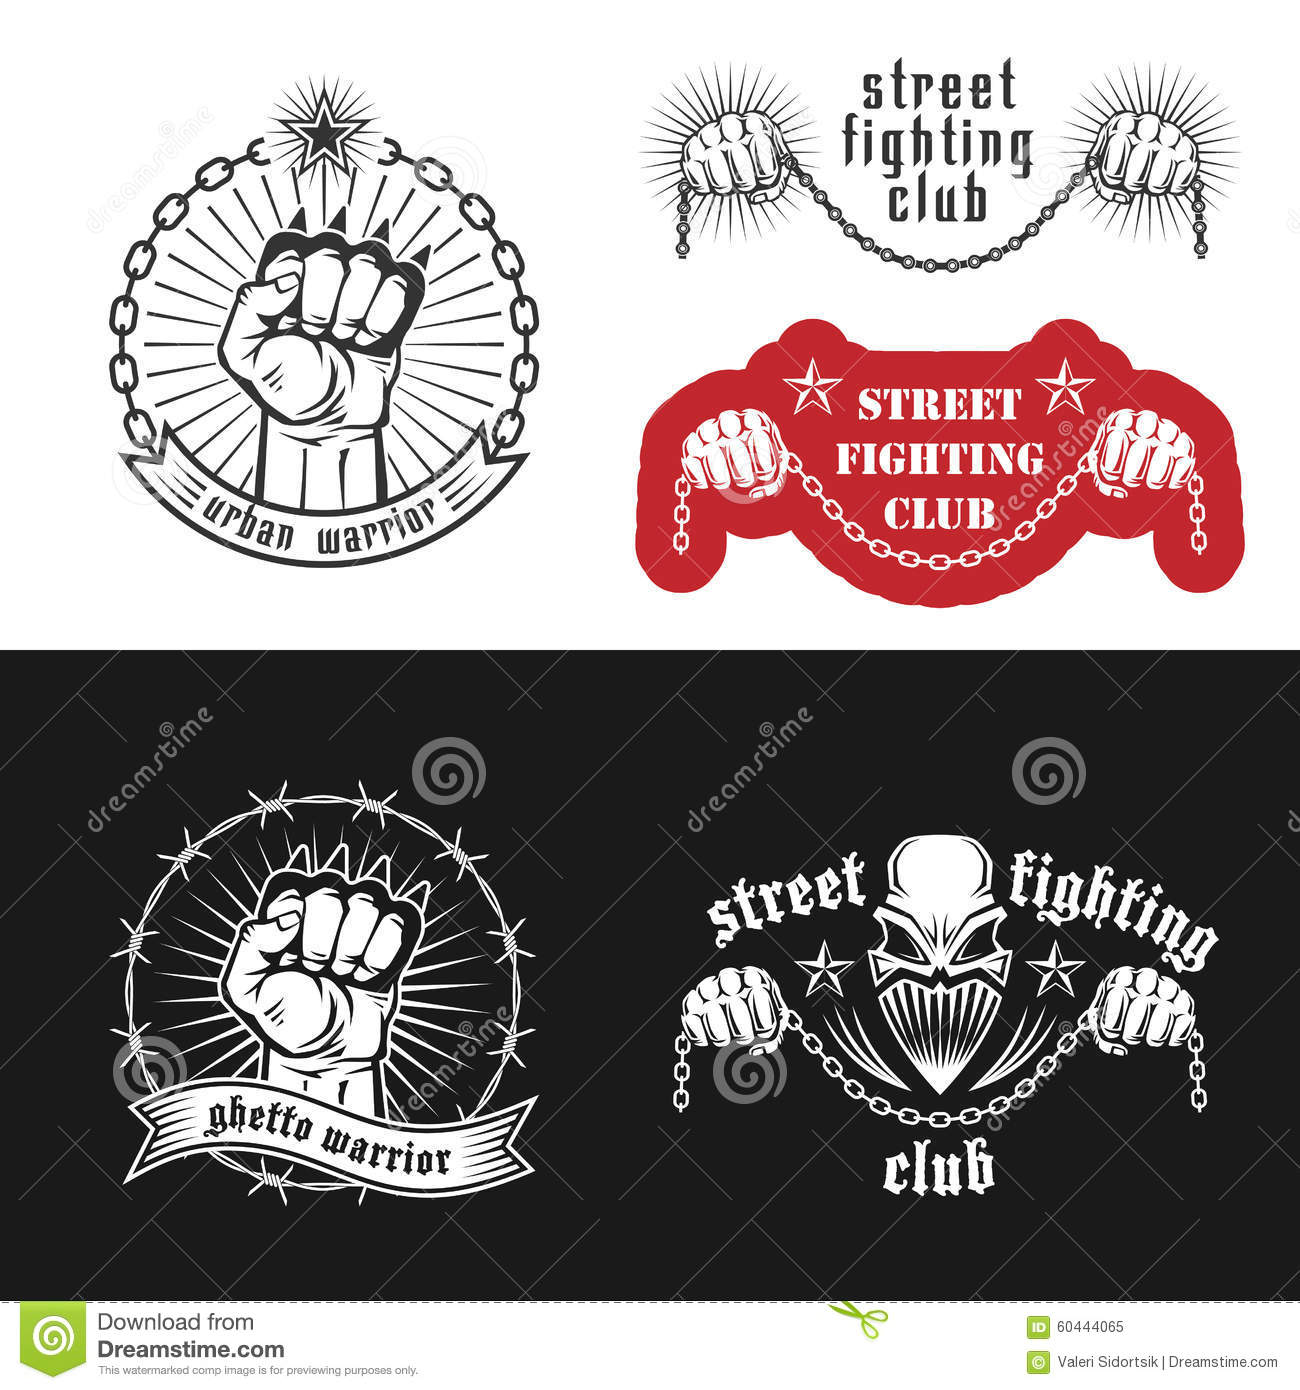 brass knuckles diagram vga to rca street fighting club emblems stock vector illustration of straight with skull stars and inscriptions urban warrior ghetto